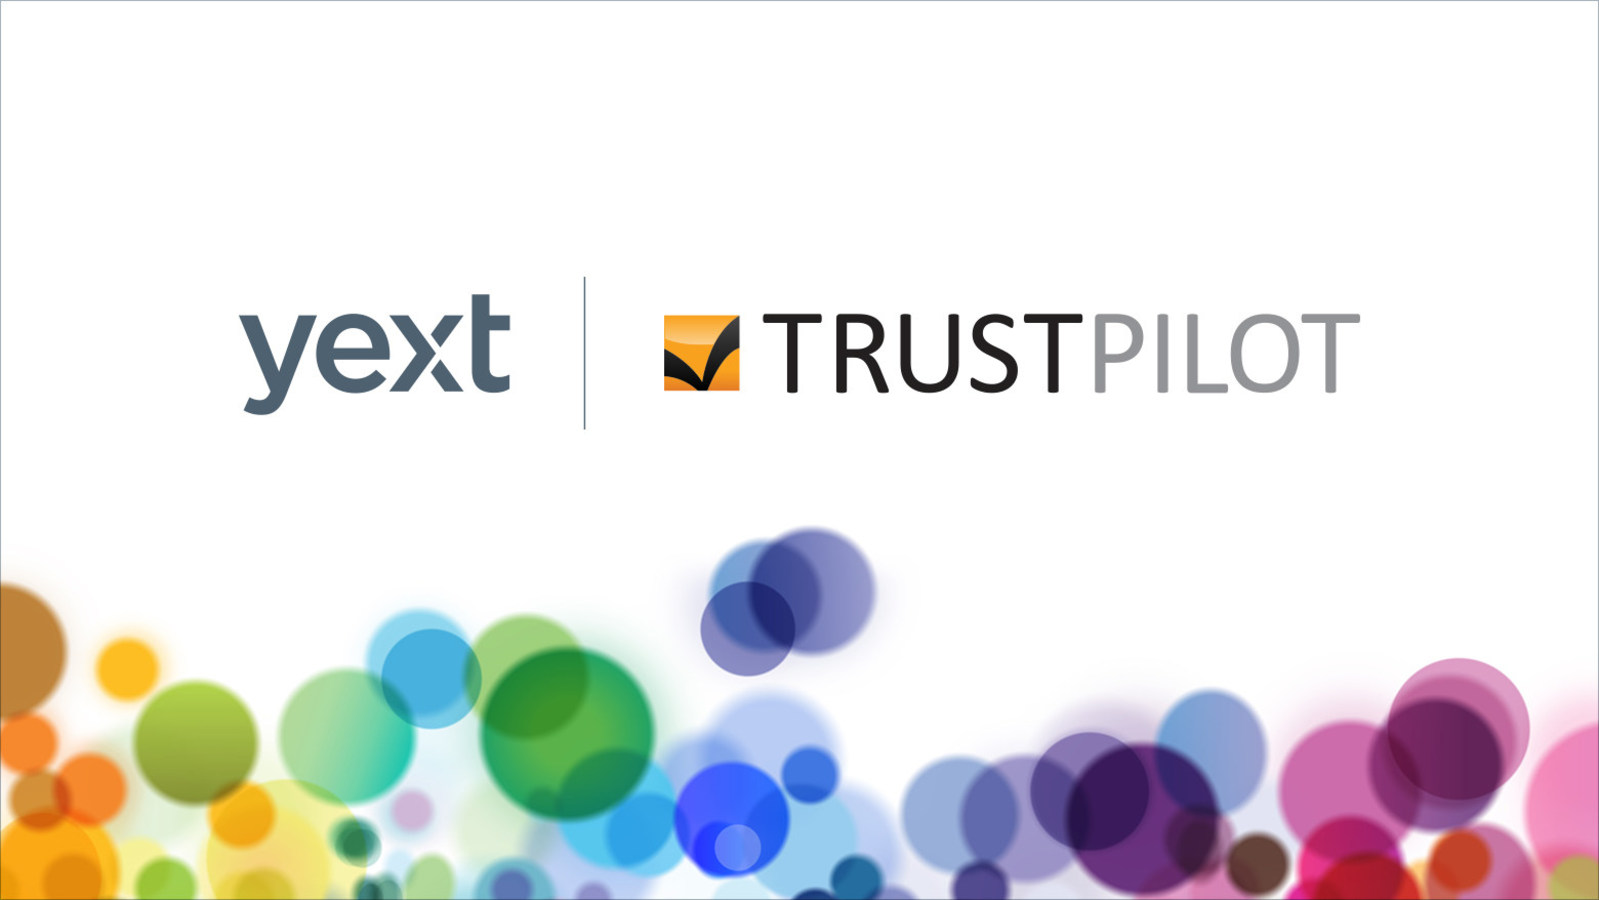 Yext And Trustpilot Partner To Offer New Customer Reviews Integration